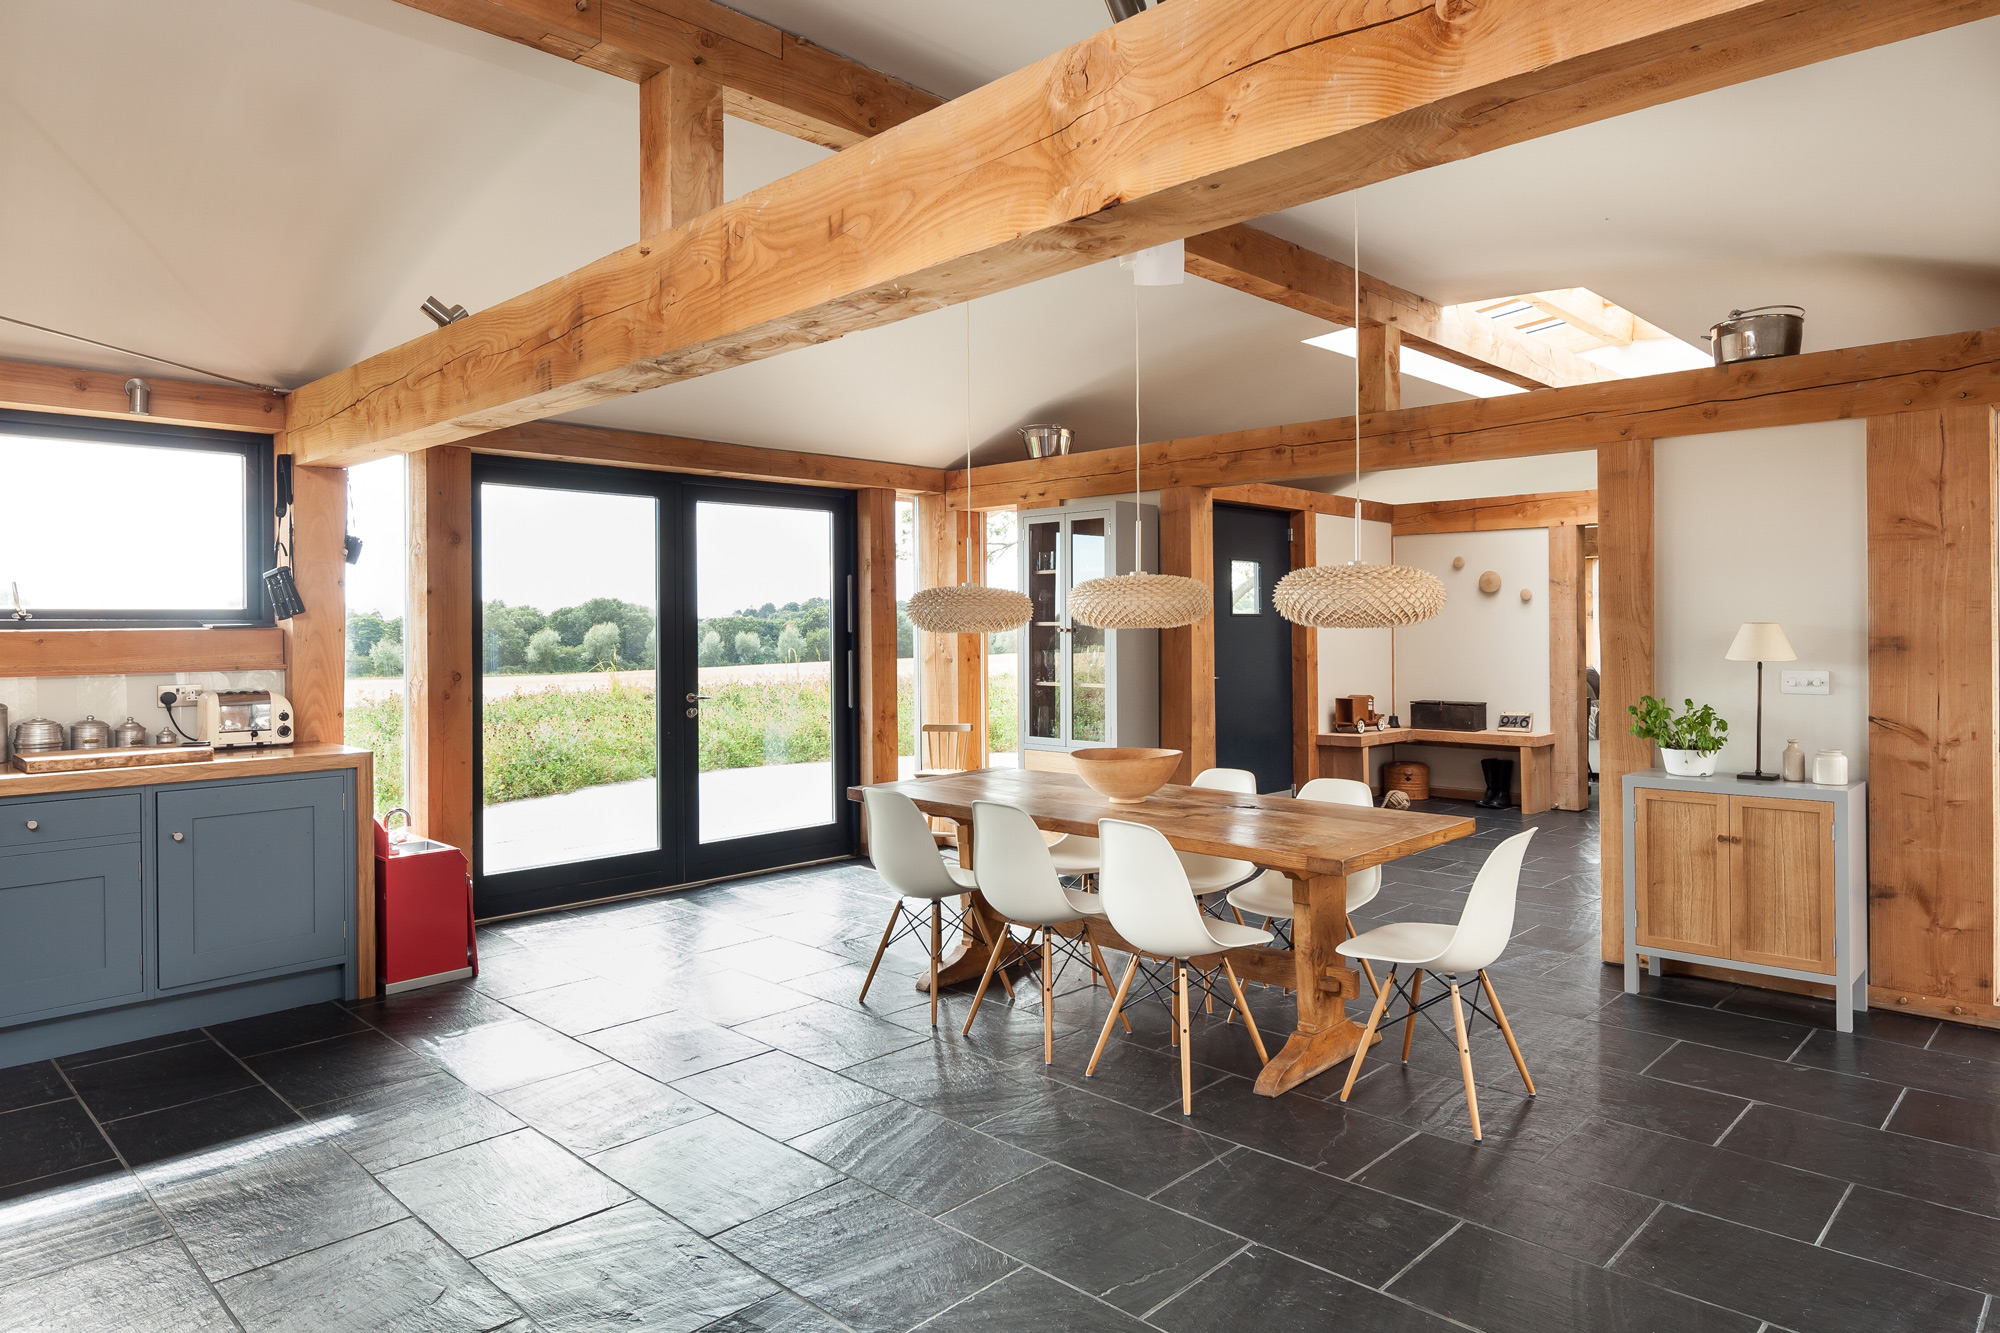 allies farm kitchen with exposed oak frame beams